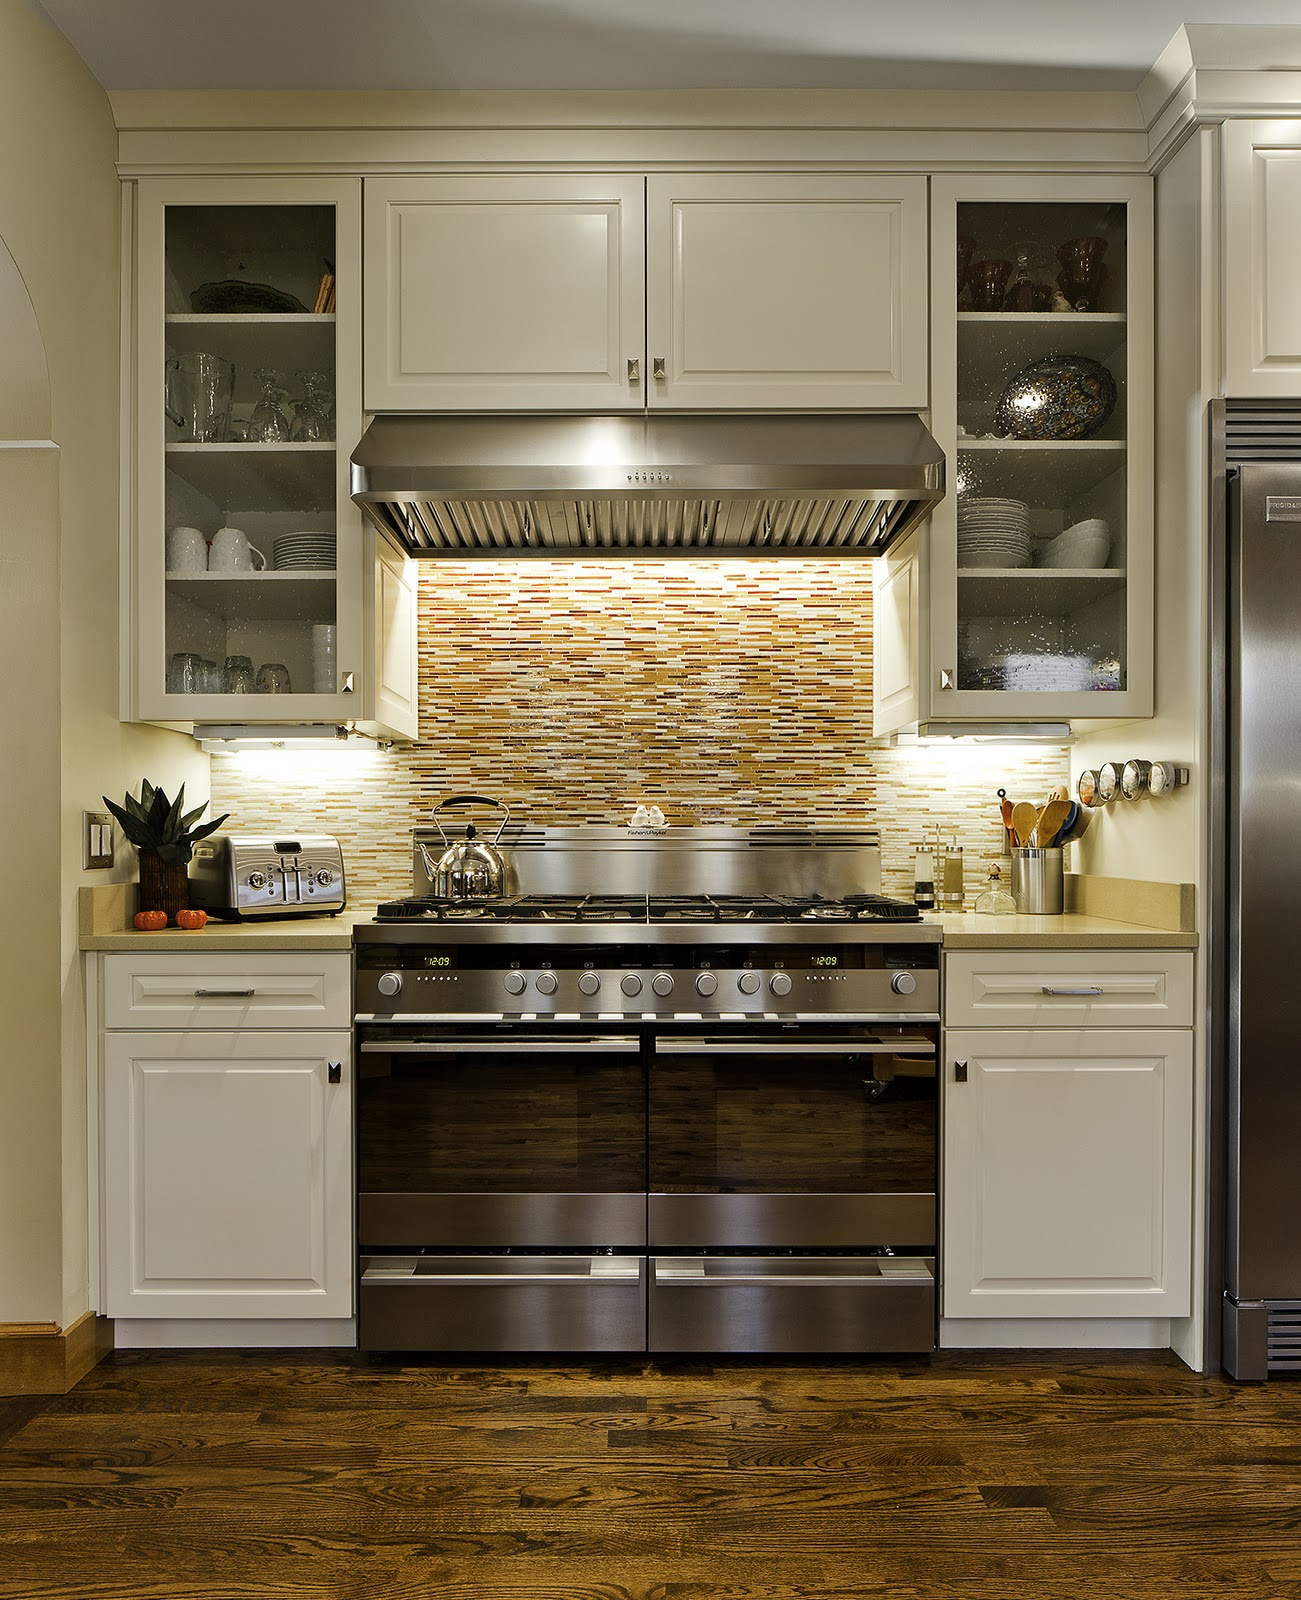 Eclectic White Kitchen: Christa Pirl Furniture & Interiors: THE ECLECTIC KITCHEN